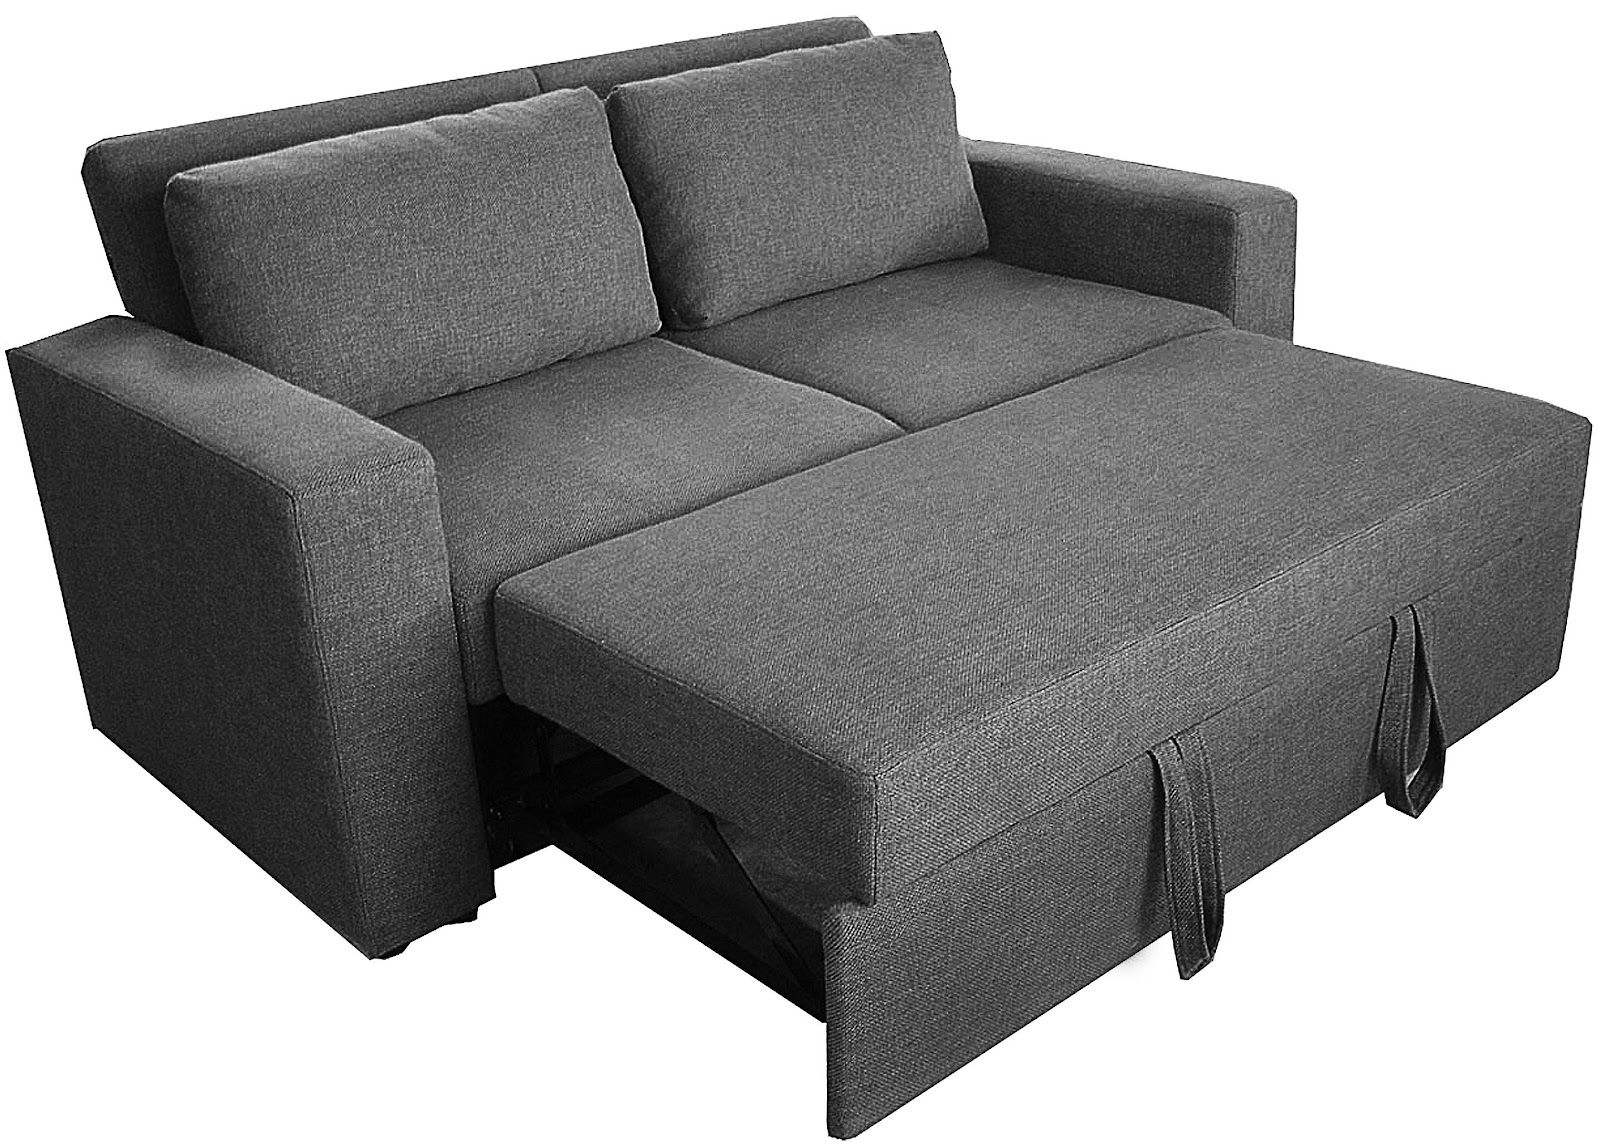 pull out sofa bed. Small-sofa-ikea-51key2swi.jpg (1600×1145) Pull Out Sofa Bed S